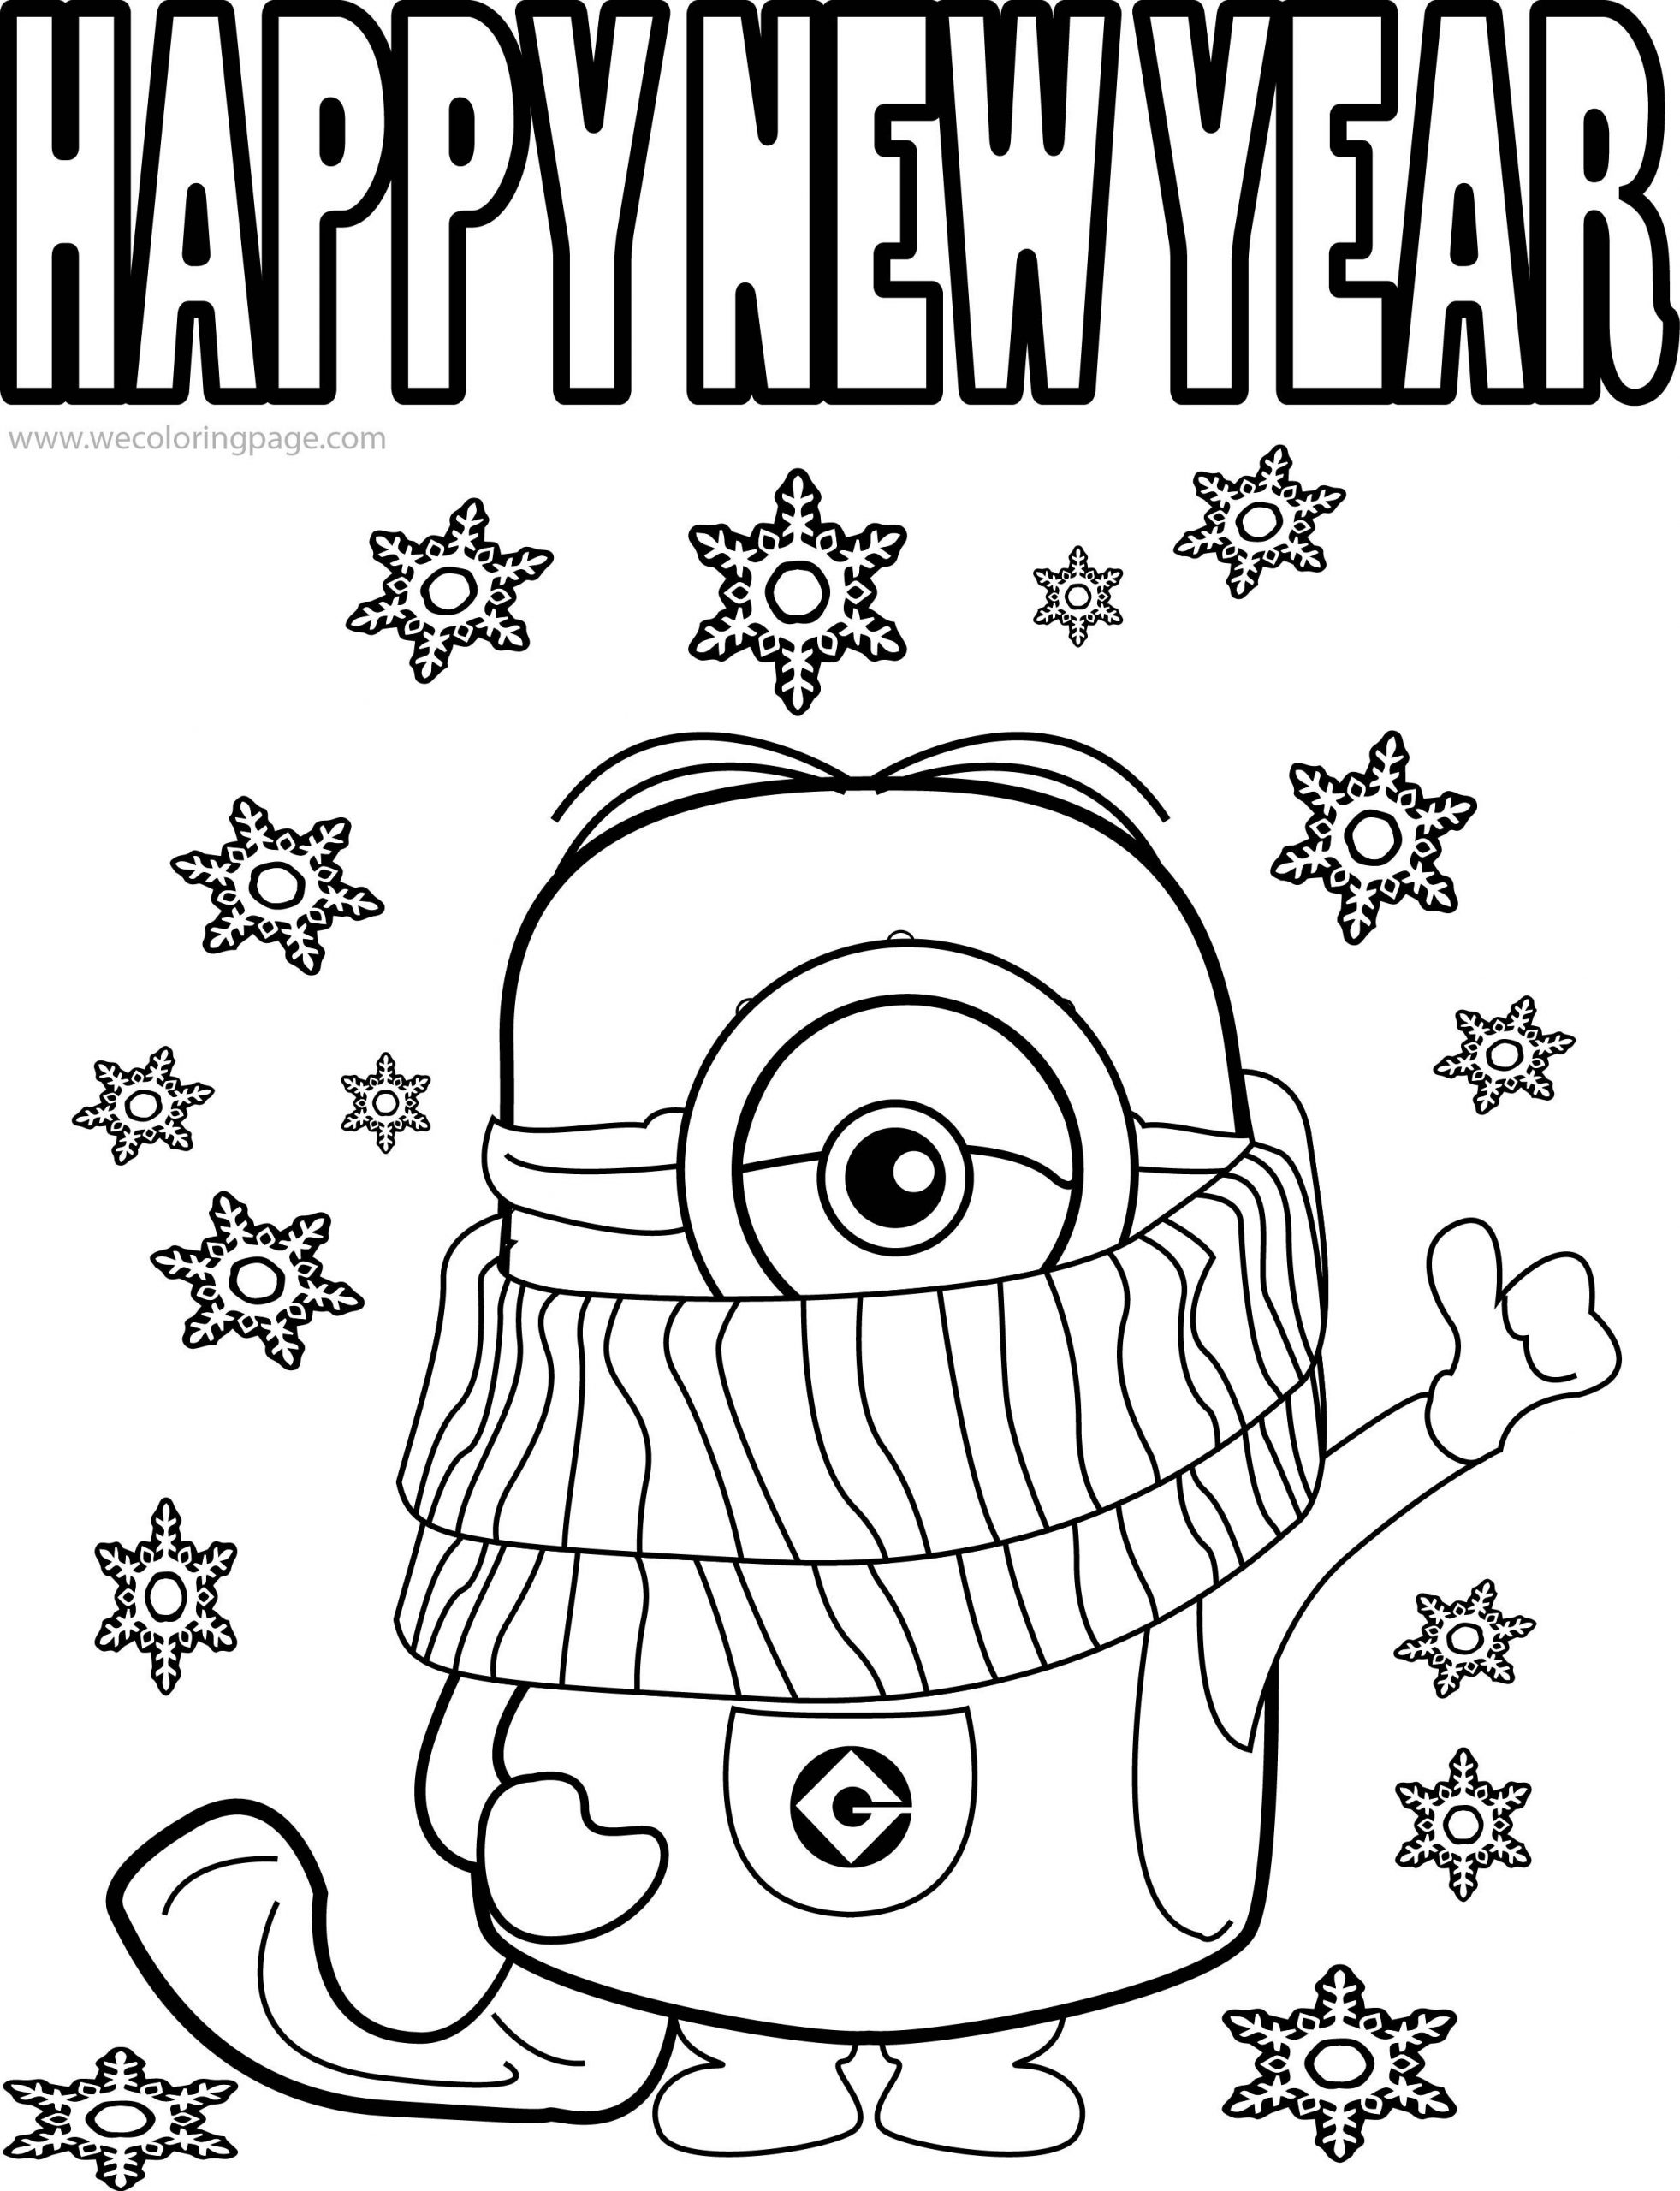 coloring new year printable happy new year coloring pages for kidsfree year coloring new